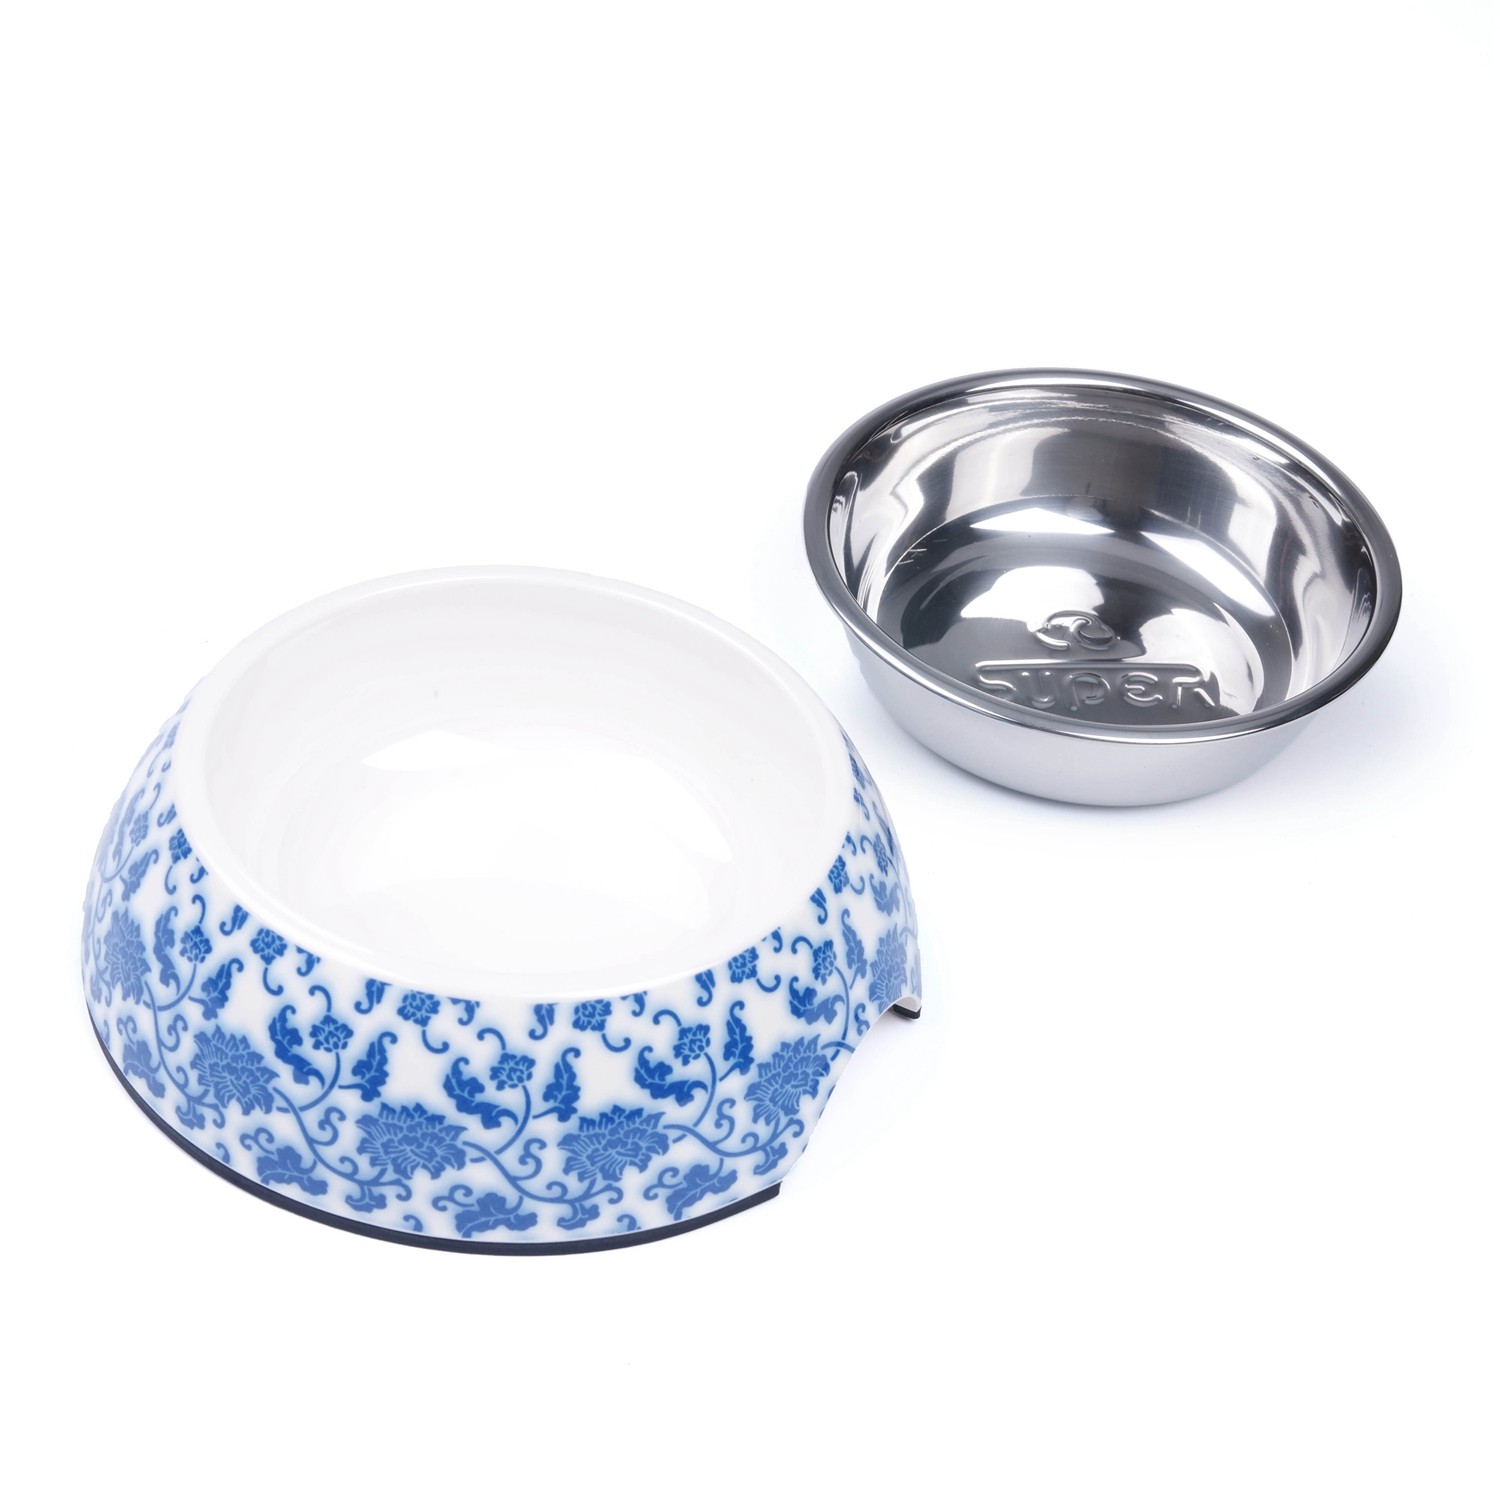 Dog Bowls With Water And Food In One Bowl